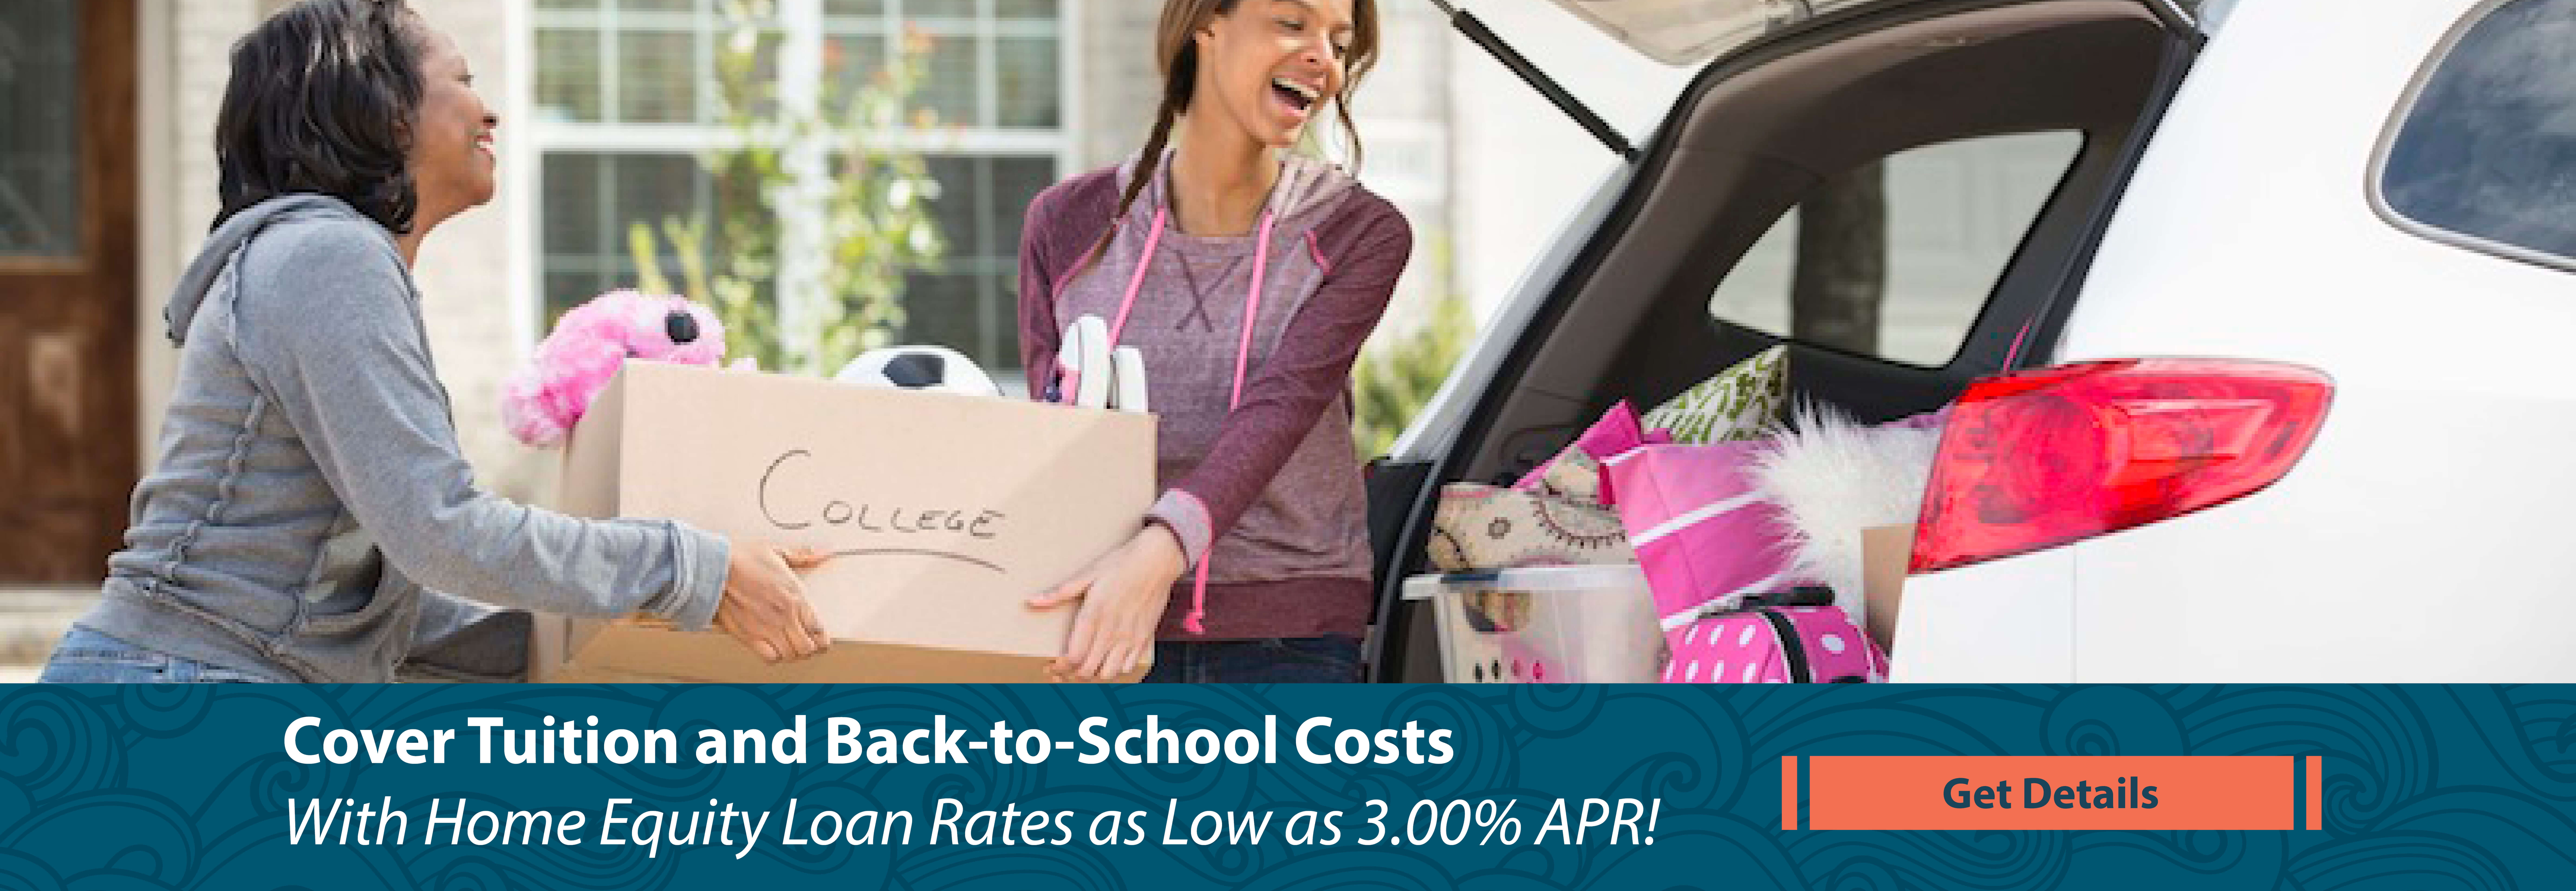 Cover College Costs With a HELOC